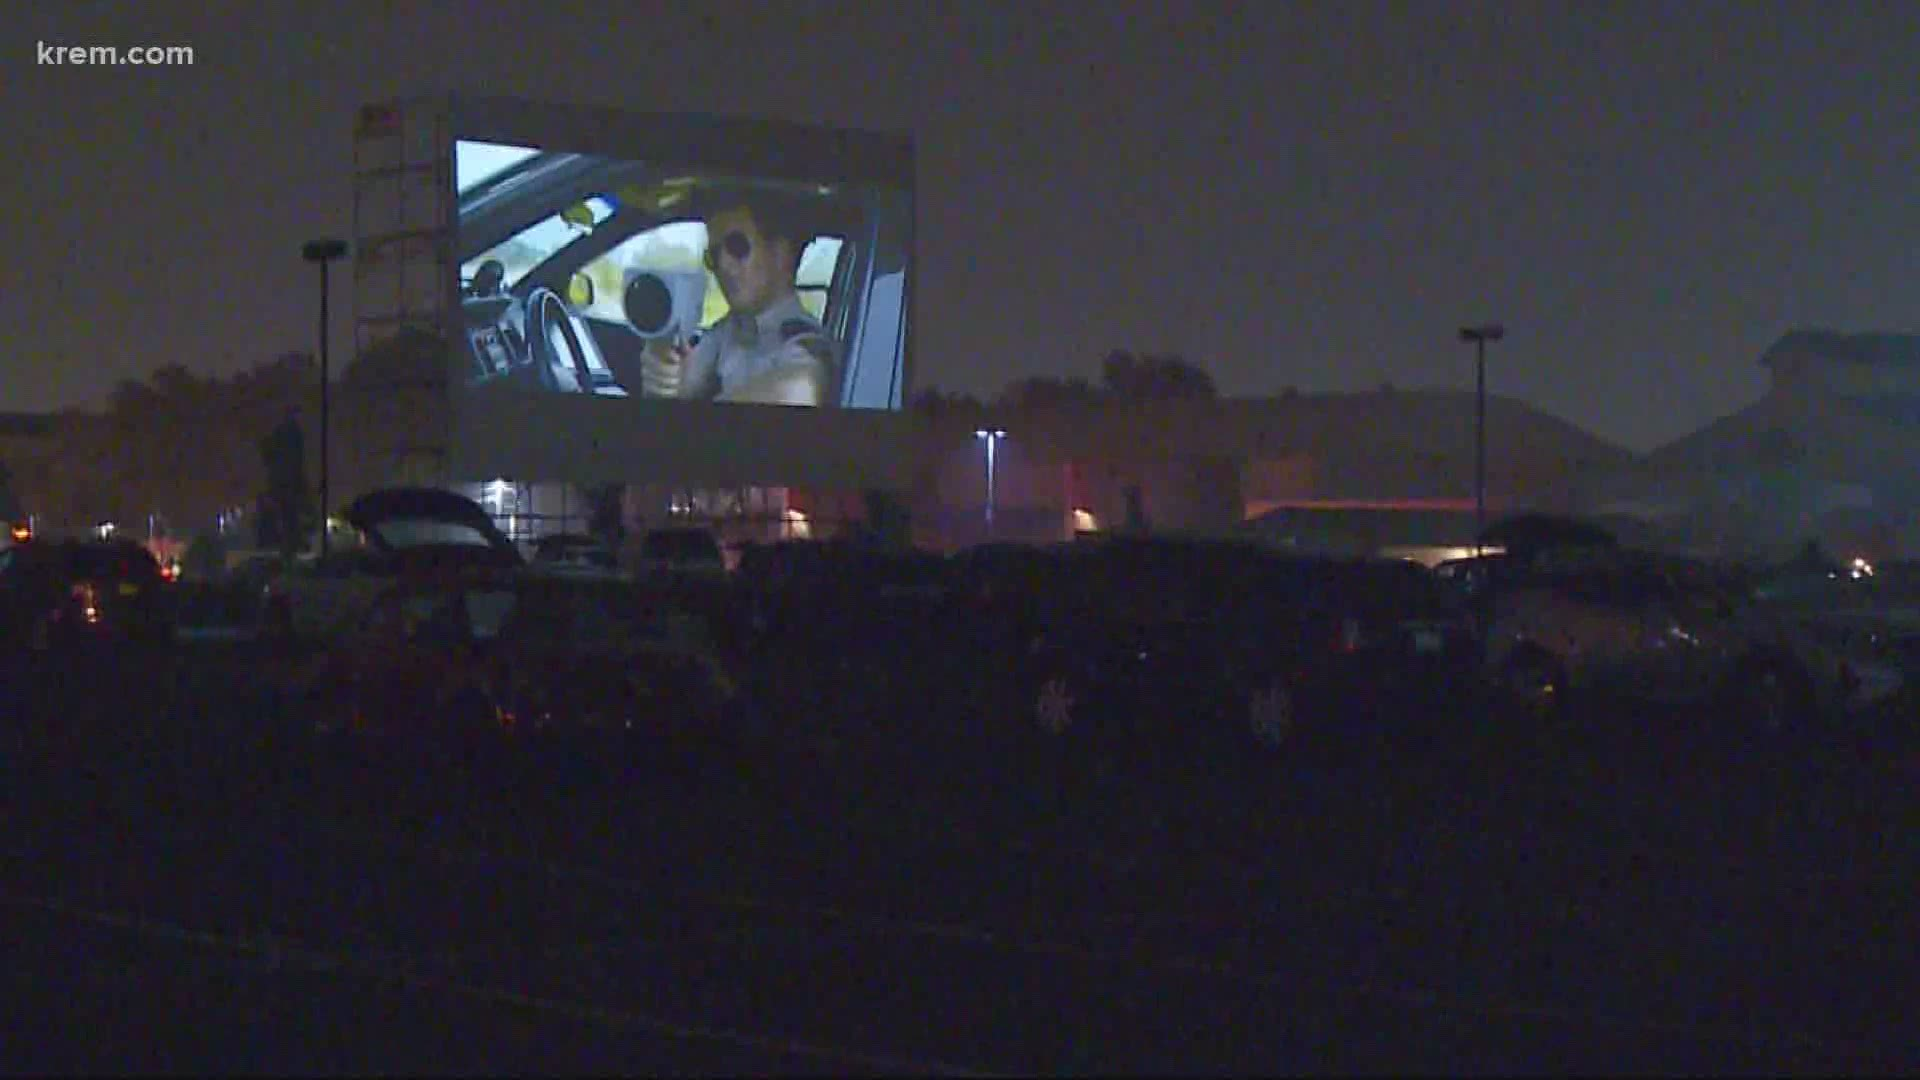 drive in movies at spokane county fairgrounds begin on friday krem com drive in movies at spokane county fairgrounds begin on this weekend